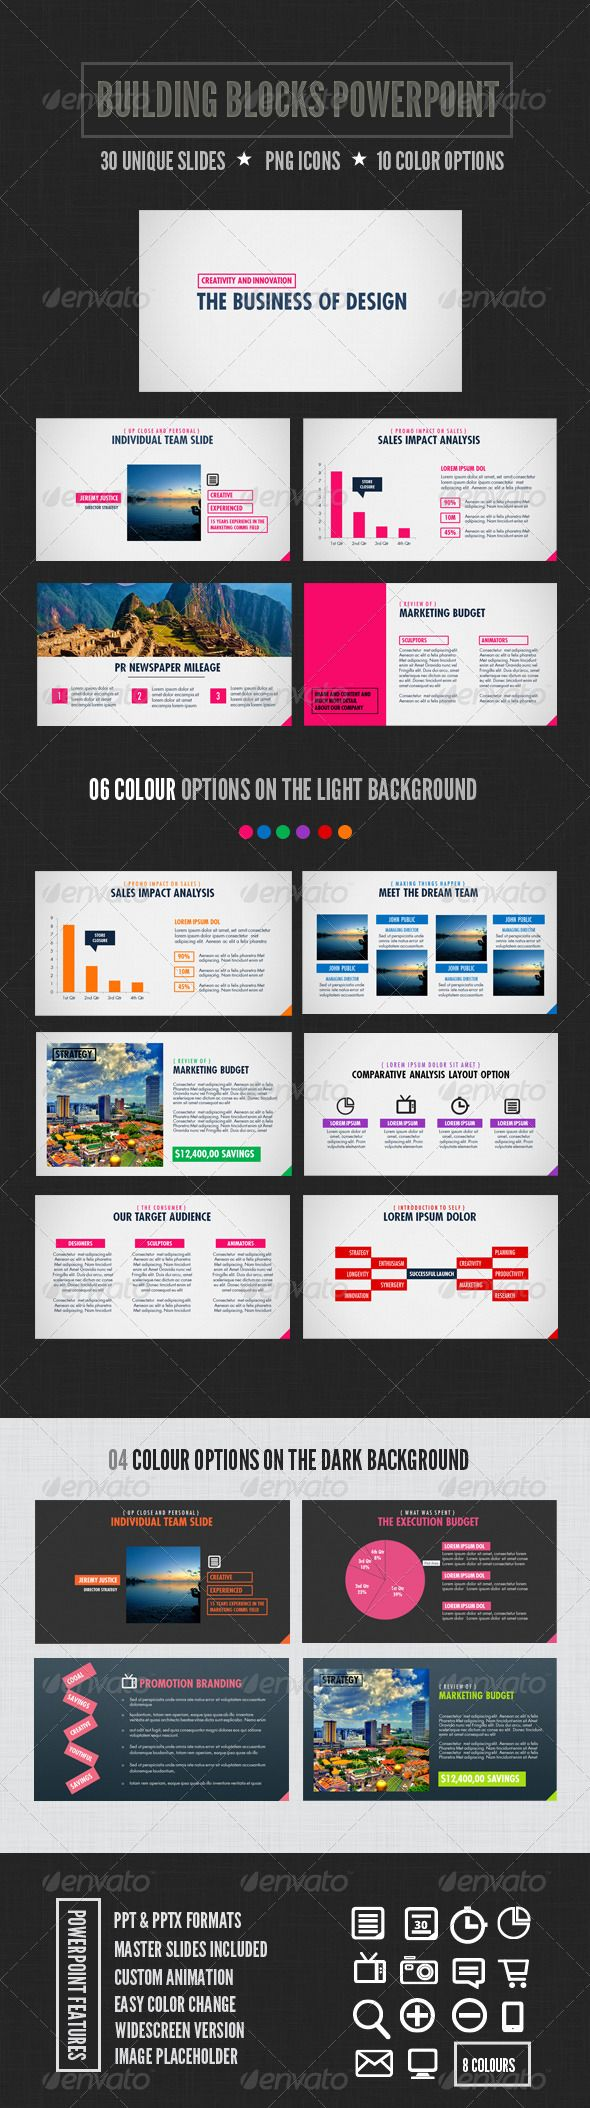 Building Blocks Powerpoint - GraphicRiver Item for Sale